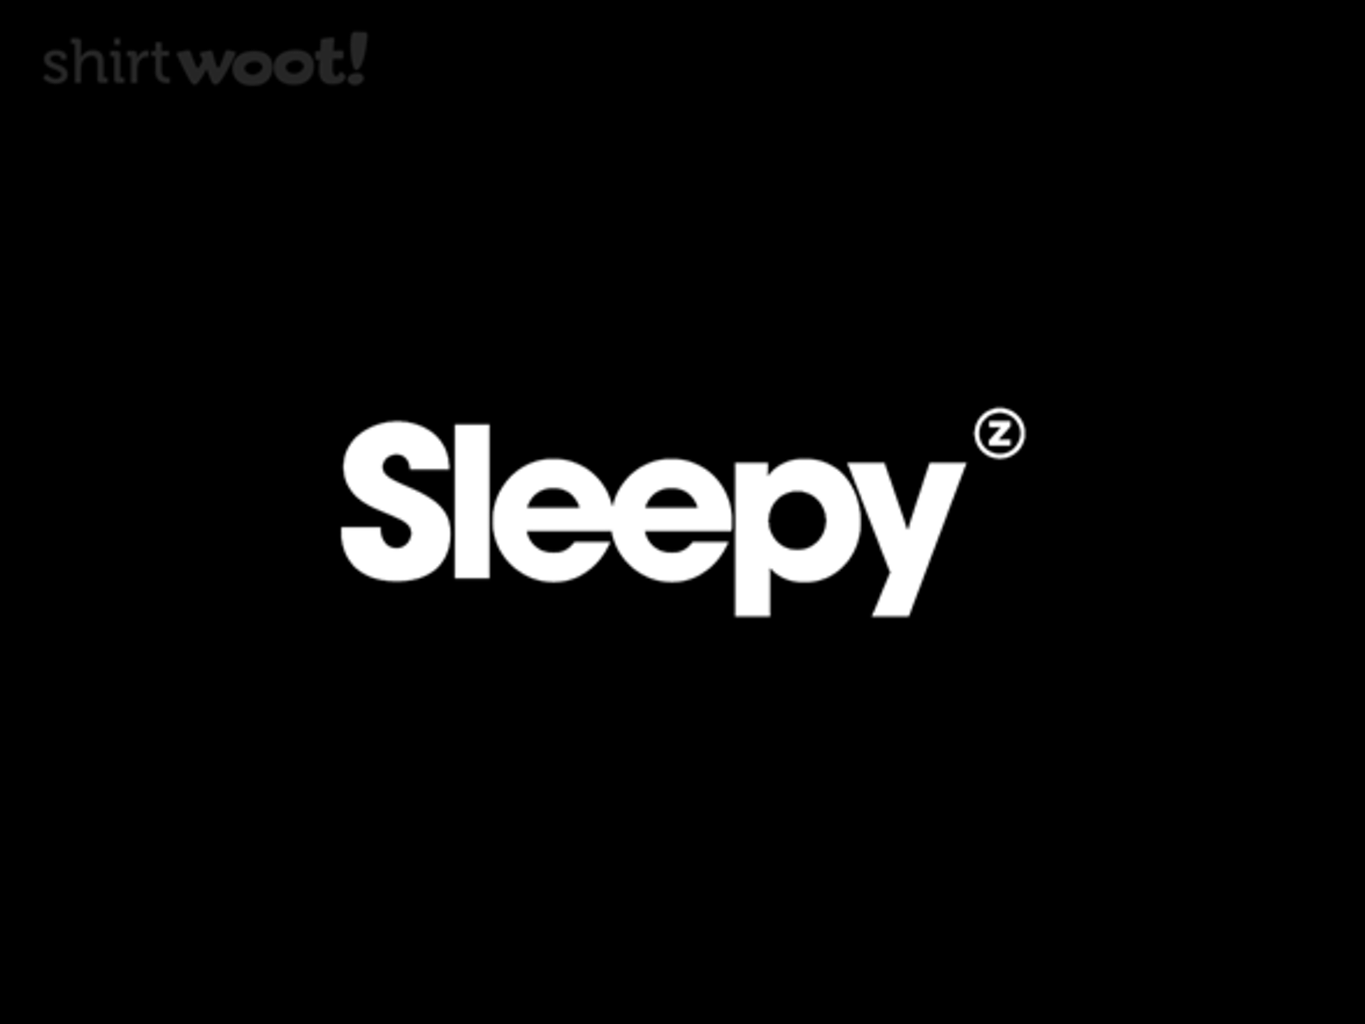 Woot!: A Tired Trademark